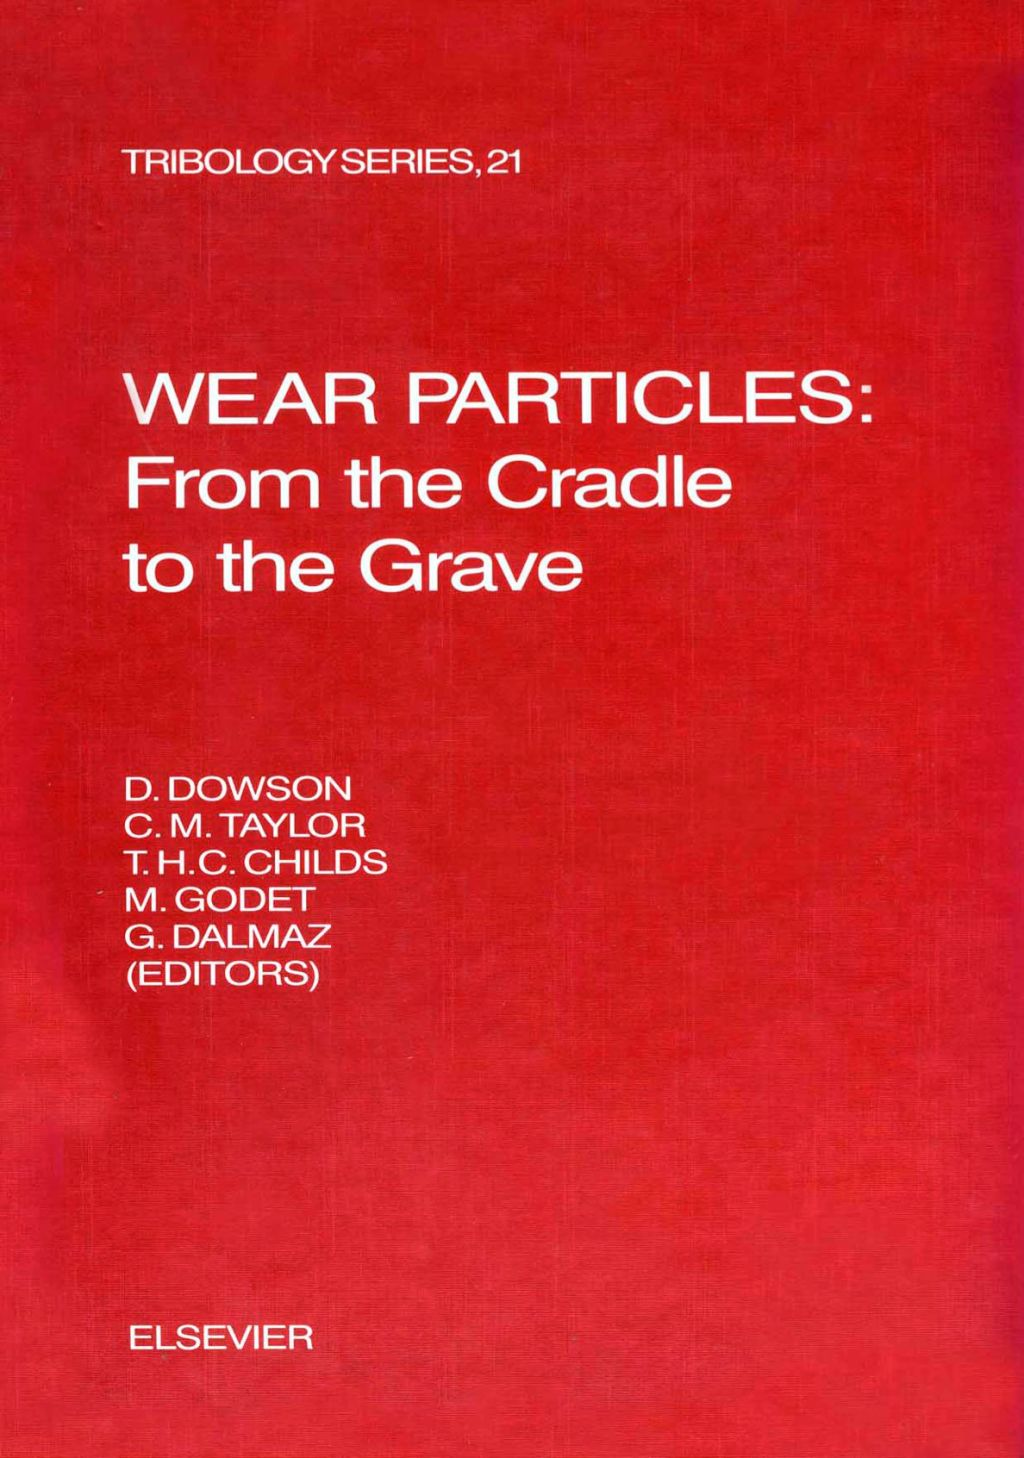 Wear Particles: From the Cradle to the Grave: From the Cradle to the Grave (ebook) eBooks